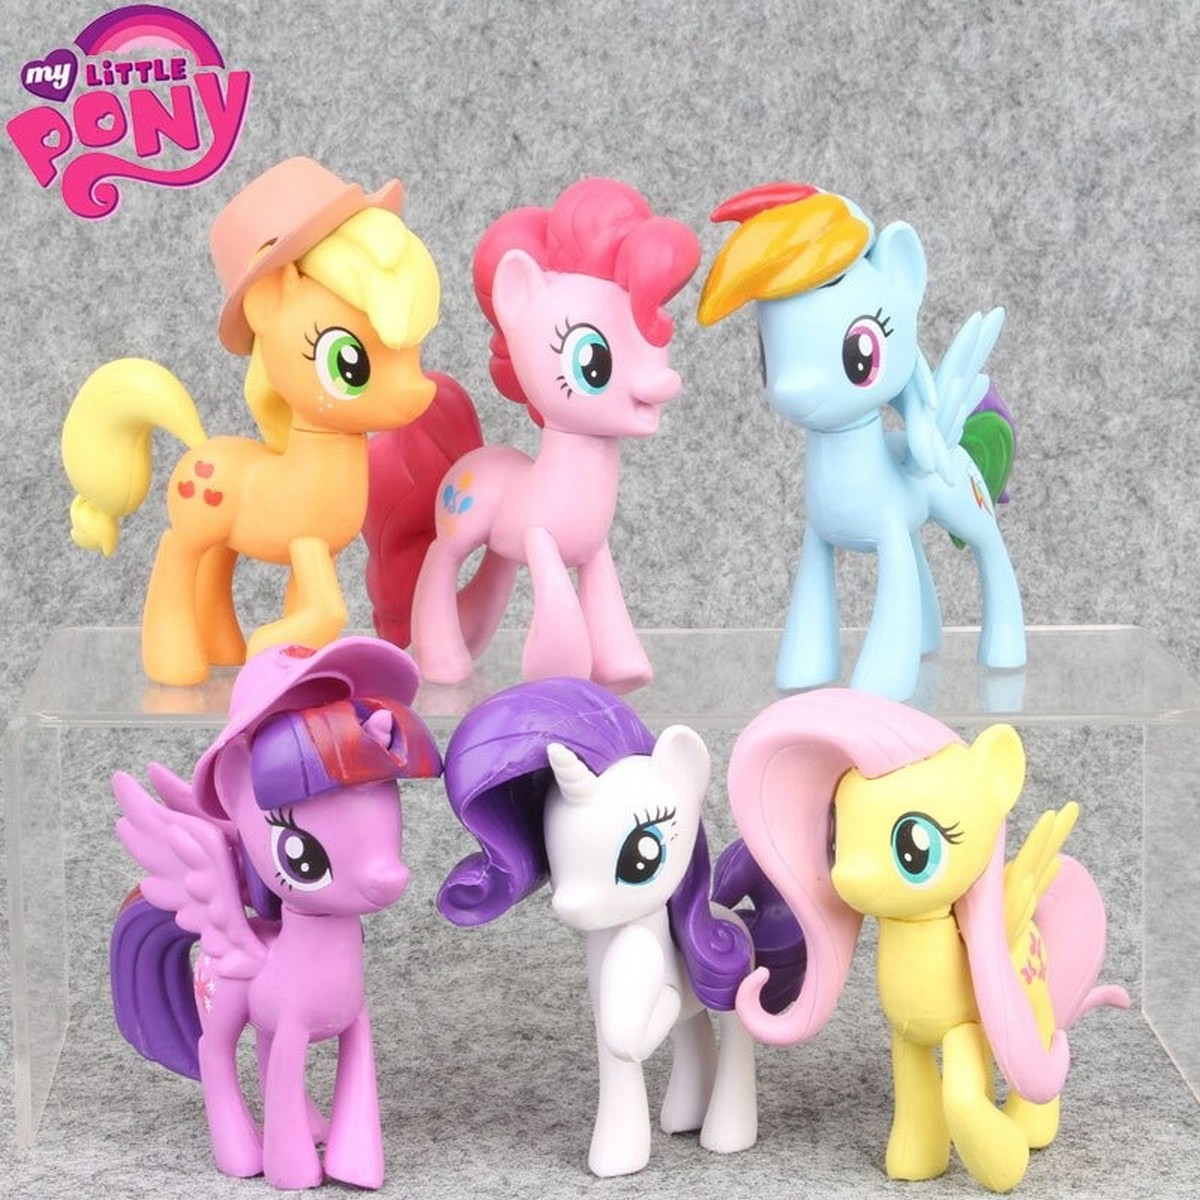 6 pcs/set Small 10cm Unicorn My Little Pony Anime Figure Model Toy PVC Figures Doll Collectible Toys Children's Birthday Christmas Gifts